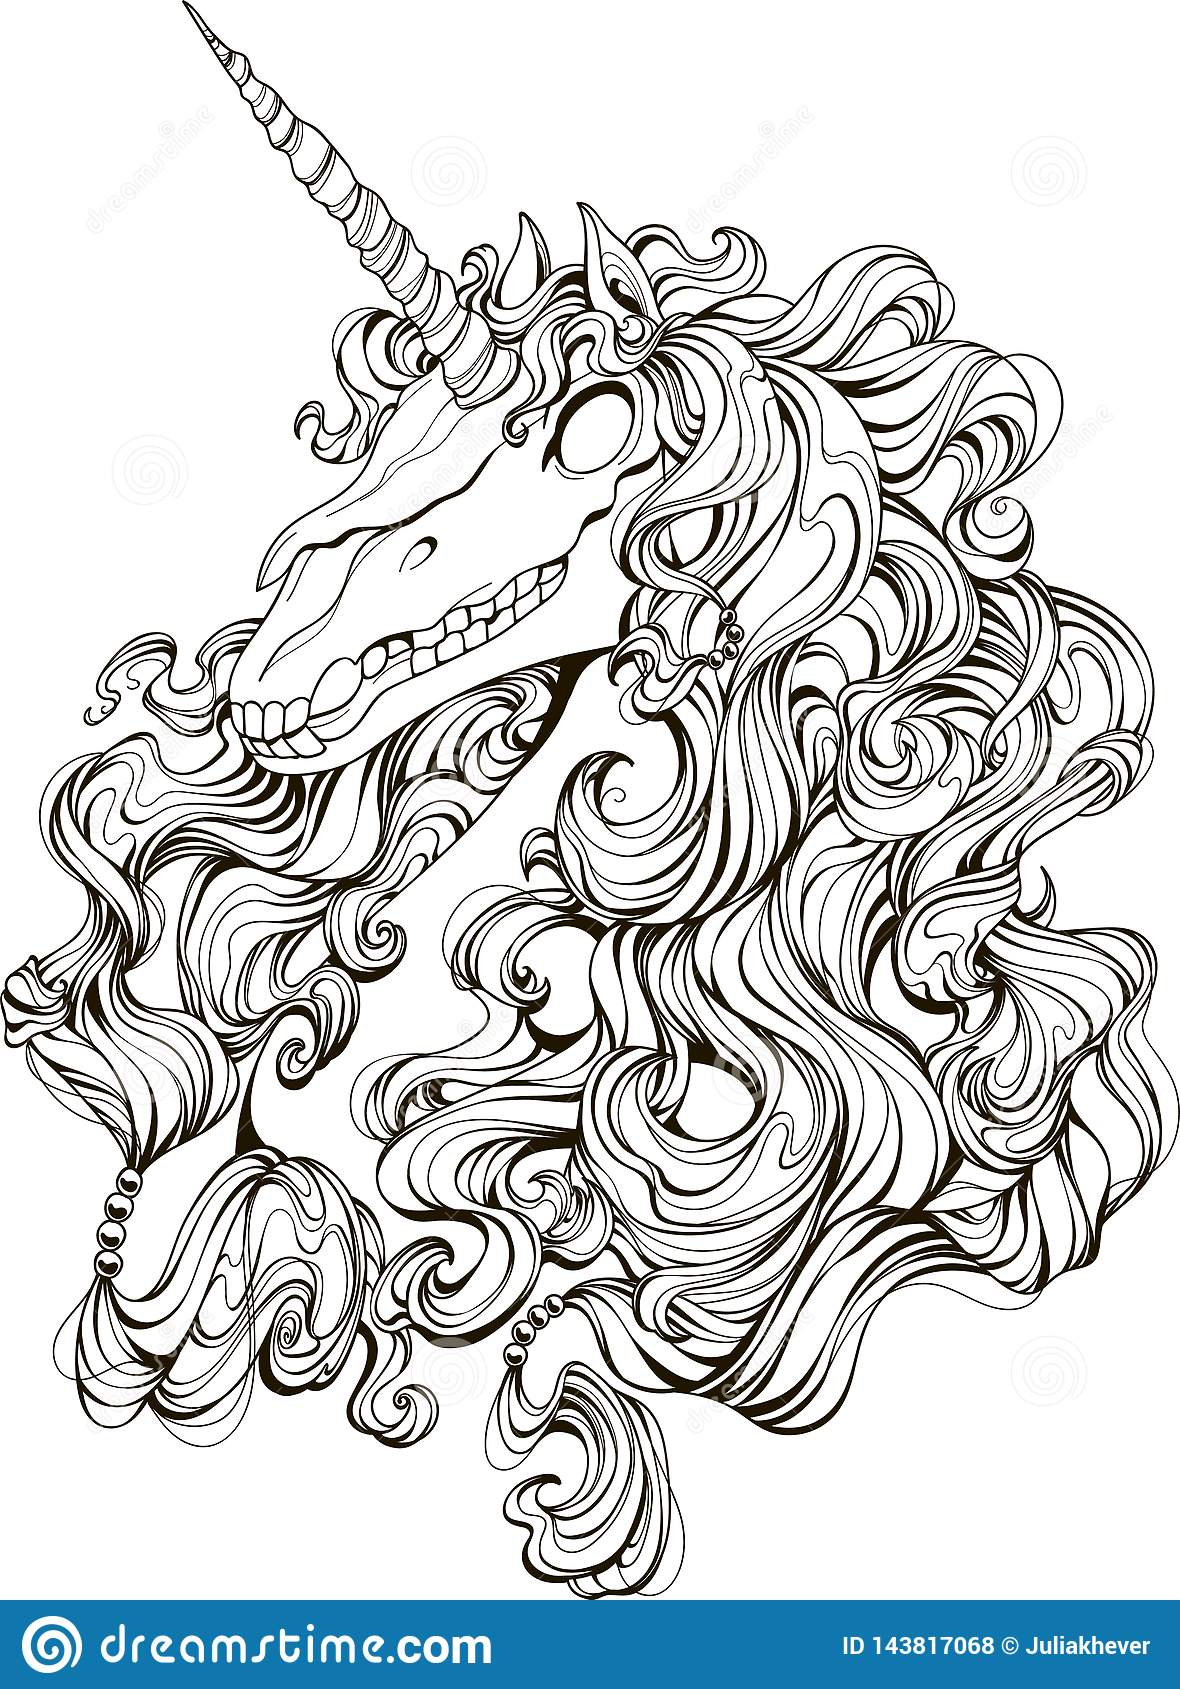 Drawing Unicorn Skull In Zentangle Style For Adult ...